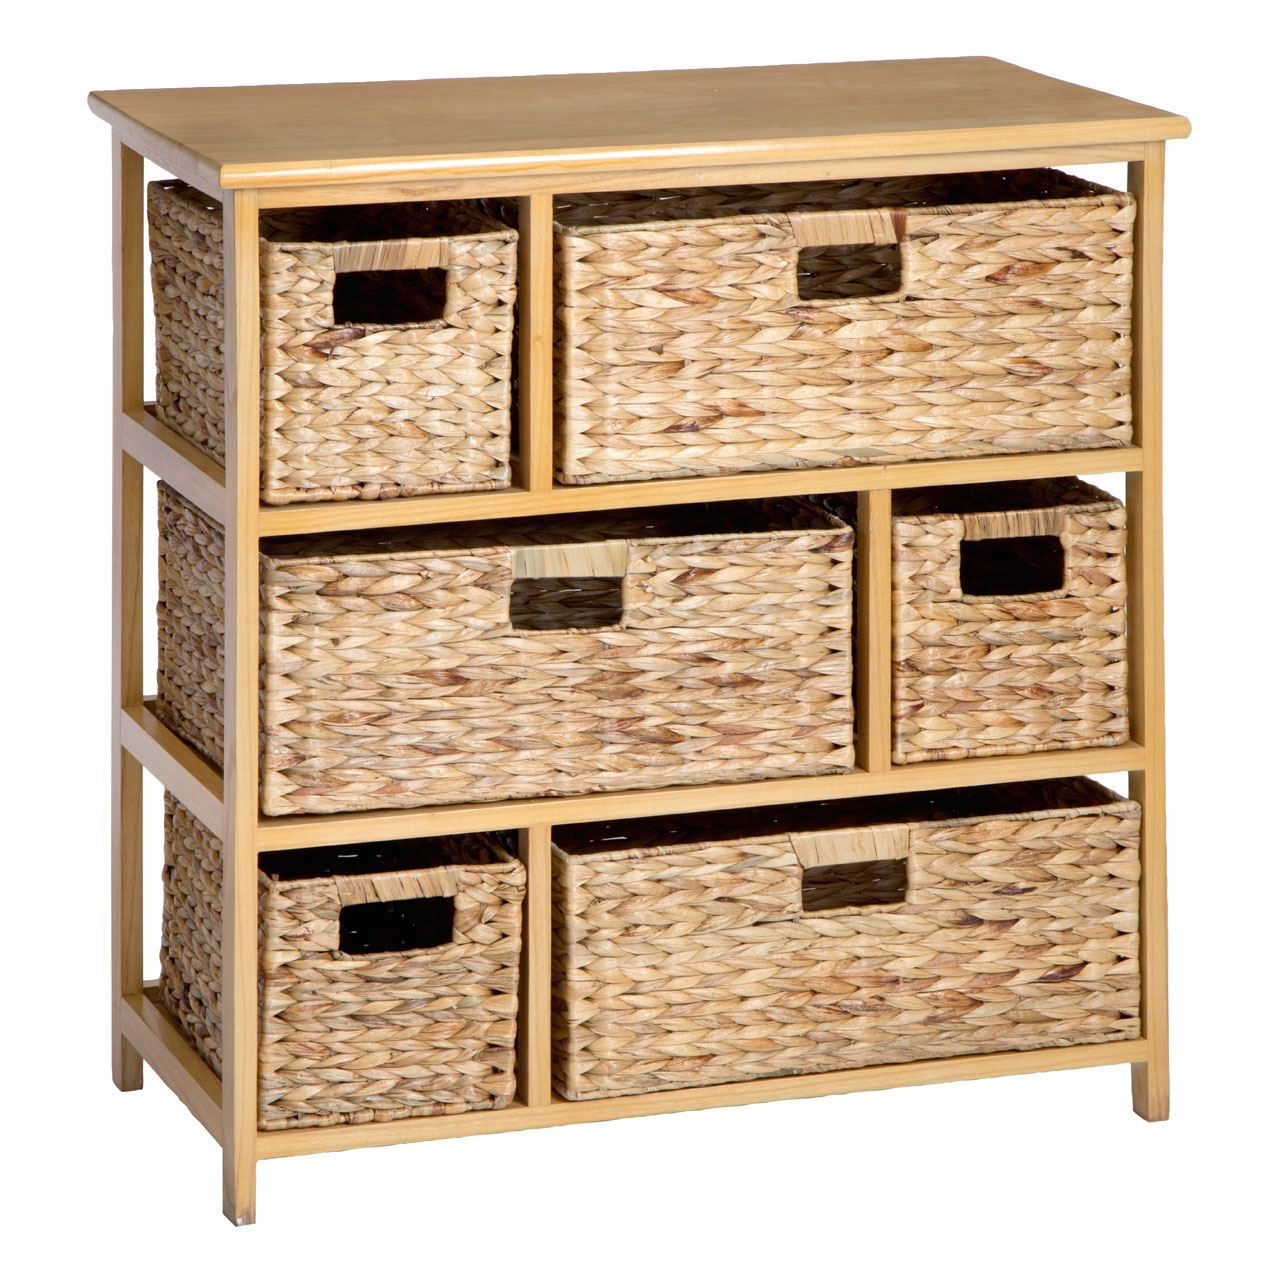 Delicieux 6 Basket Drawers Storage Unit Natural Water Hyacinth Chest Of Shelving